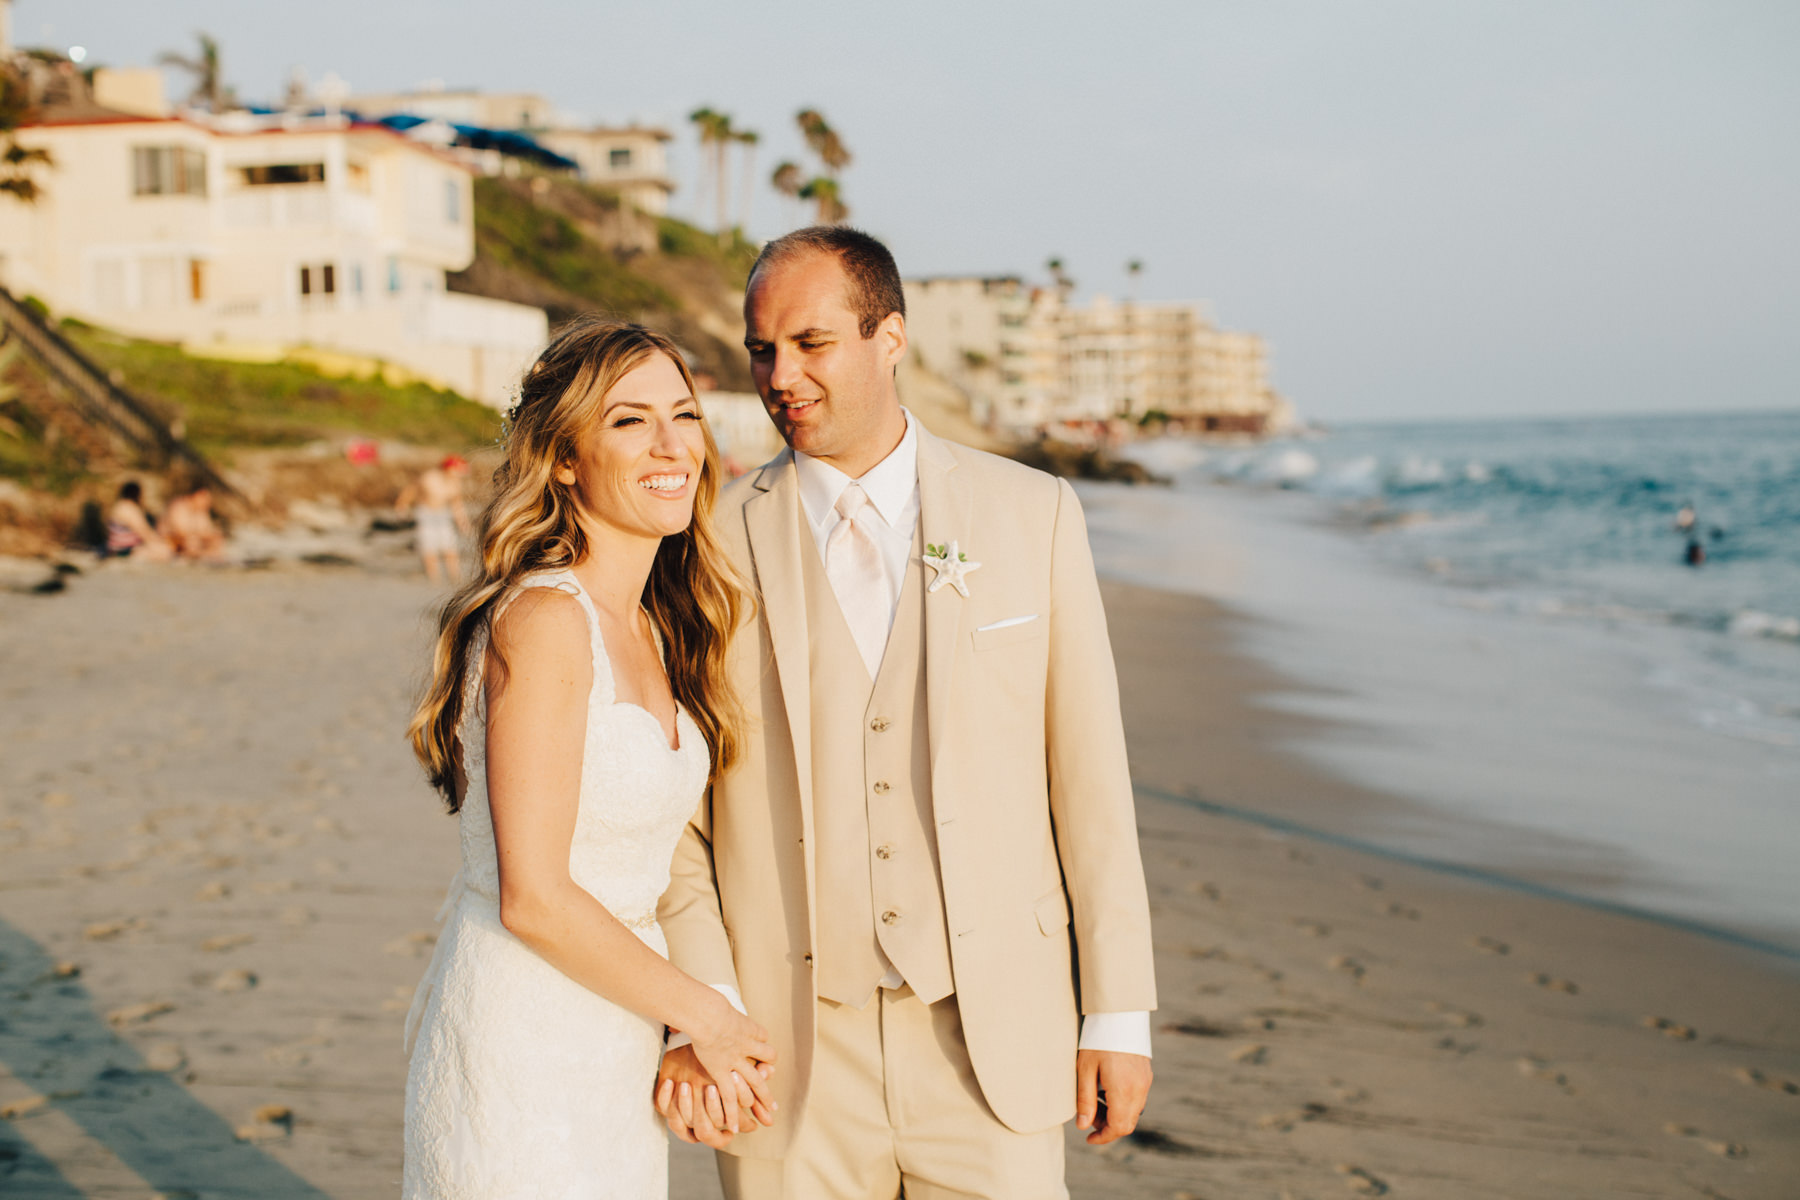 Hotel Laguna Beach Wedding Elopement San Diego OC Portrait + Wedding Photographer Martina Micko Photo _0031